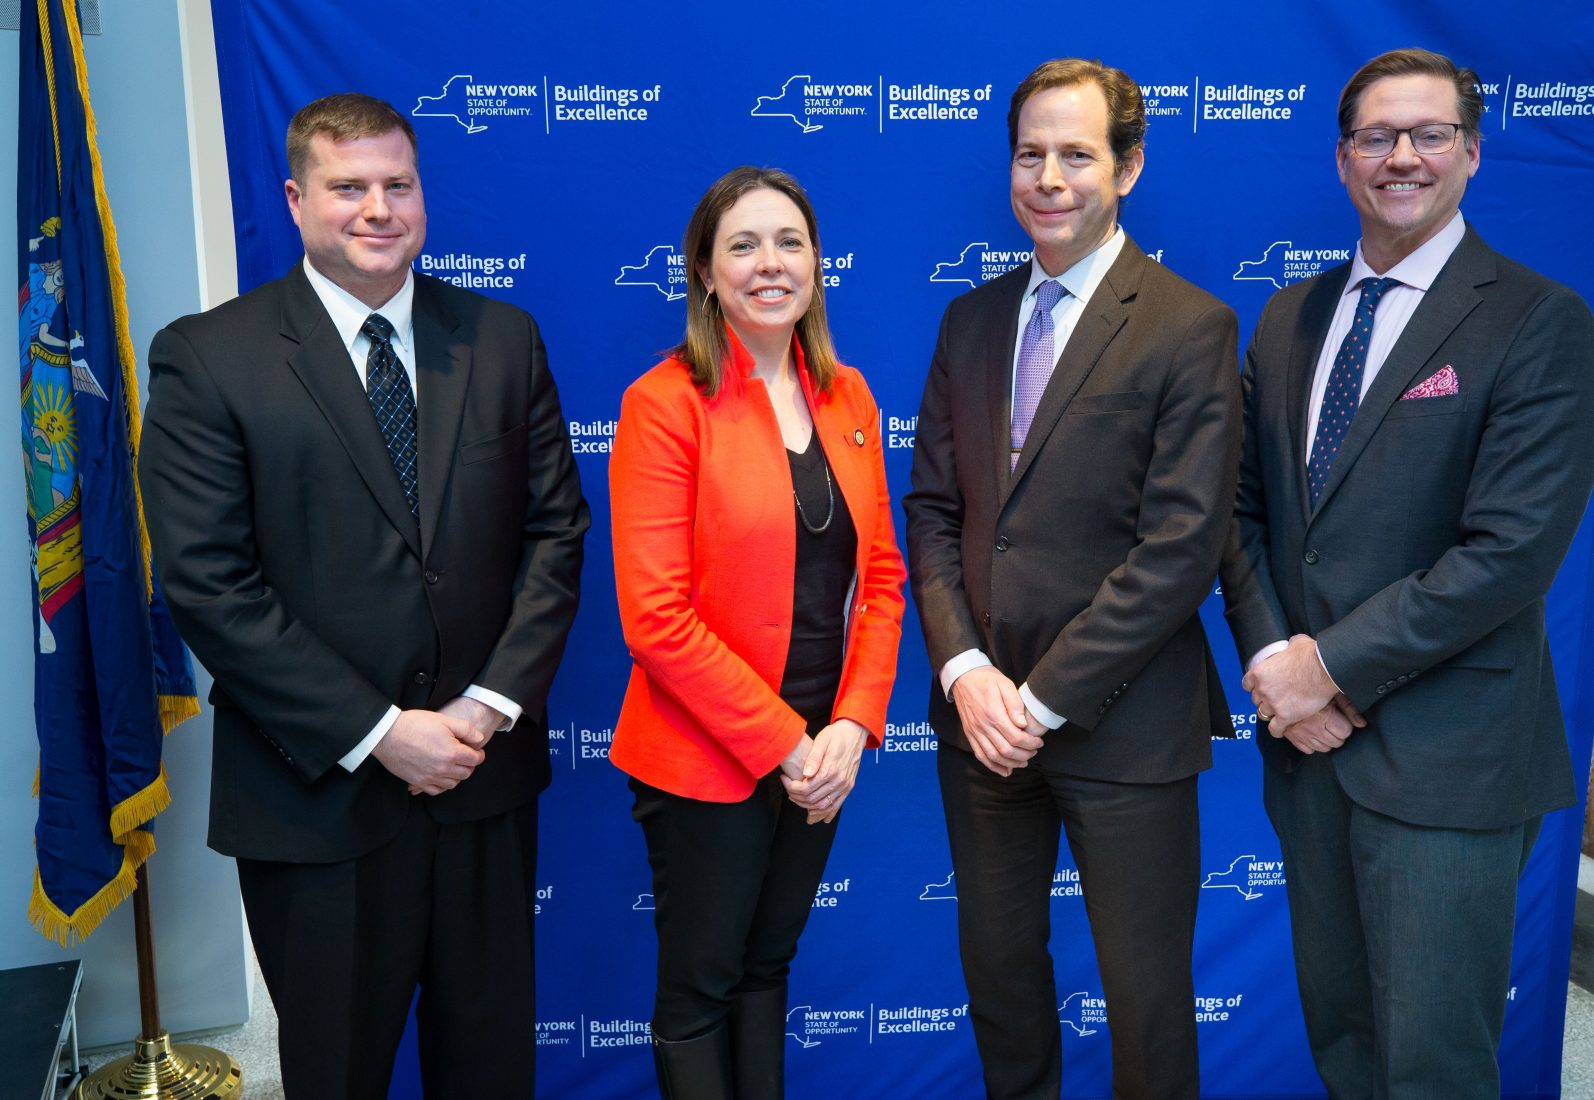 NYSERDA Announces Governor Cuomo's Groundbreaking $30M Buildings of Excellence Competition